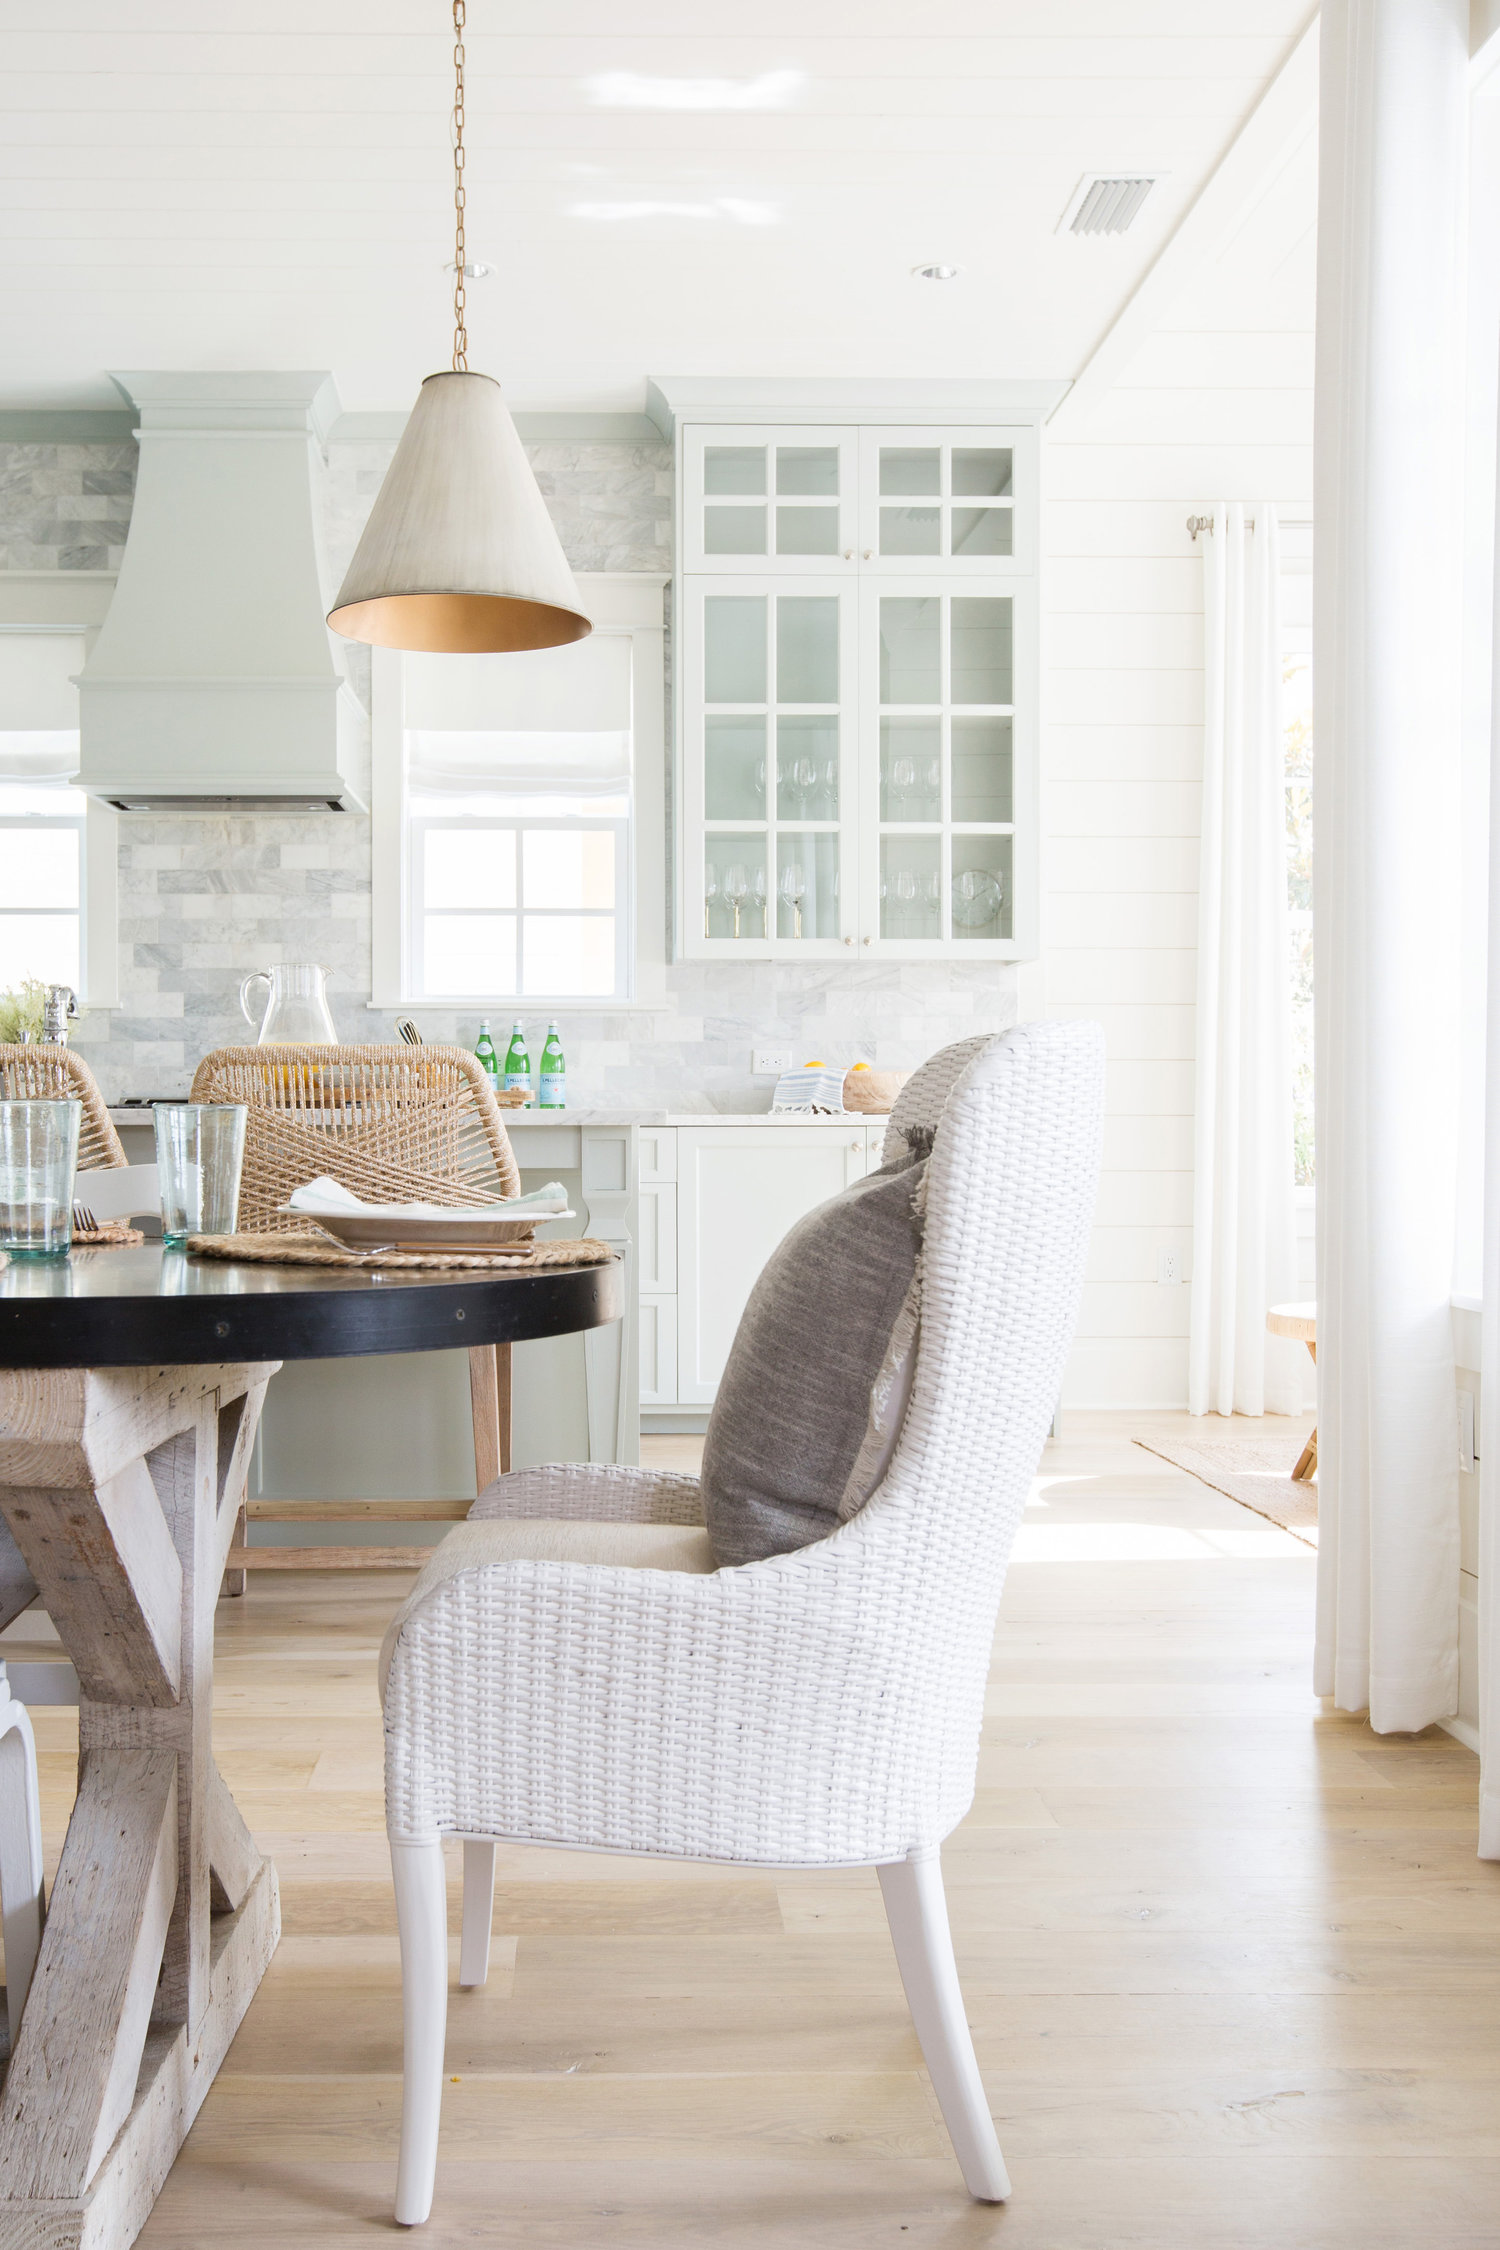 Love this kitchen table and mismatched chairs kellyelko.com #kitchens #lighting #interiors #decorate